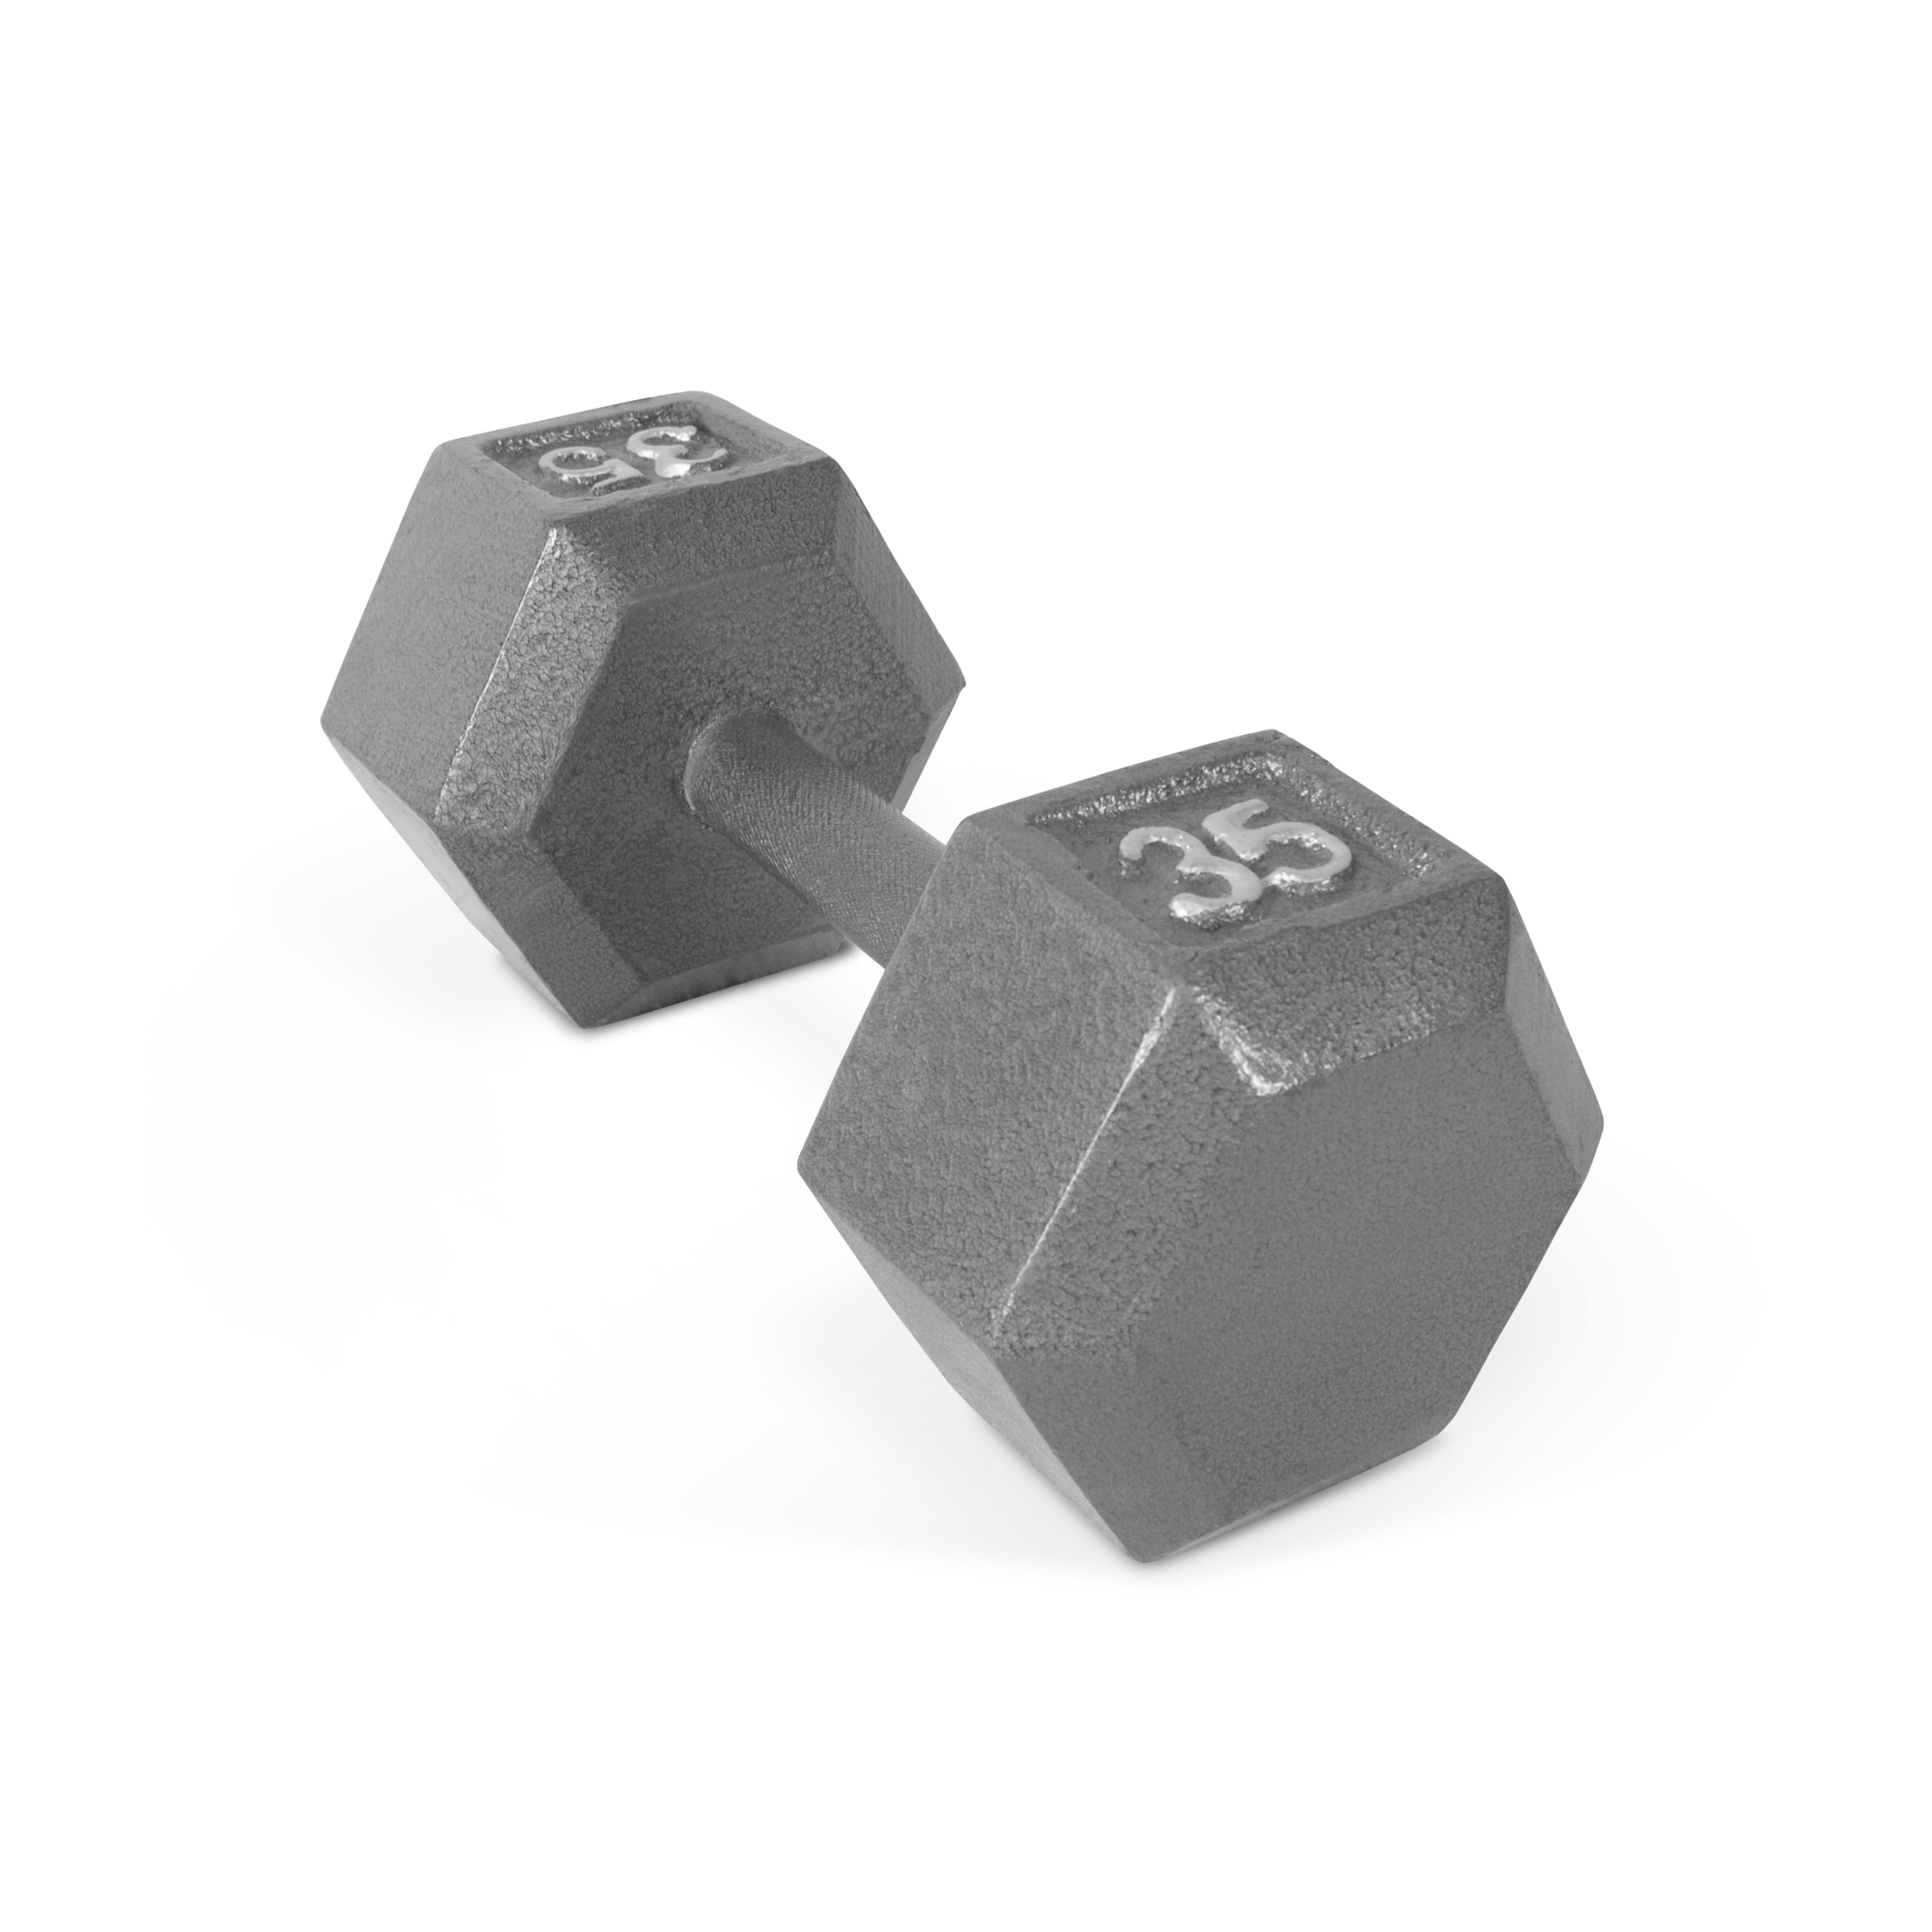 CAP Barbell Cast Iron Hex Dumbbell, Single 35lbs